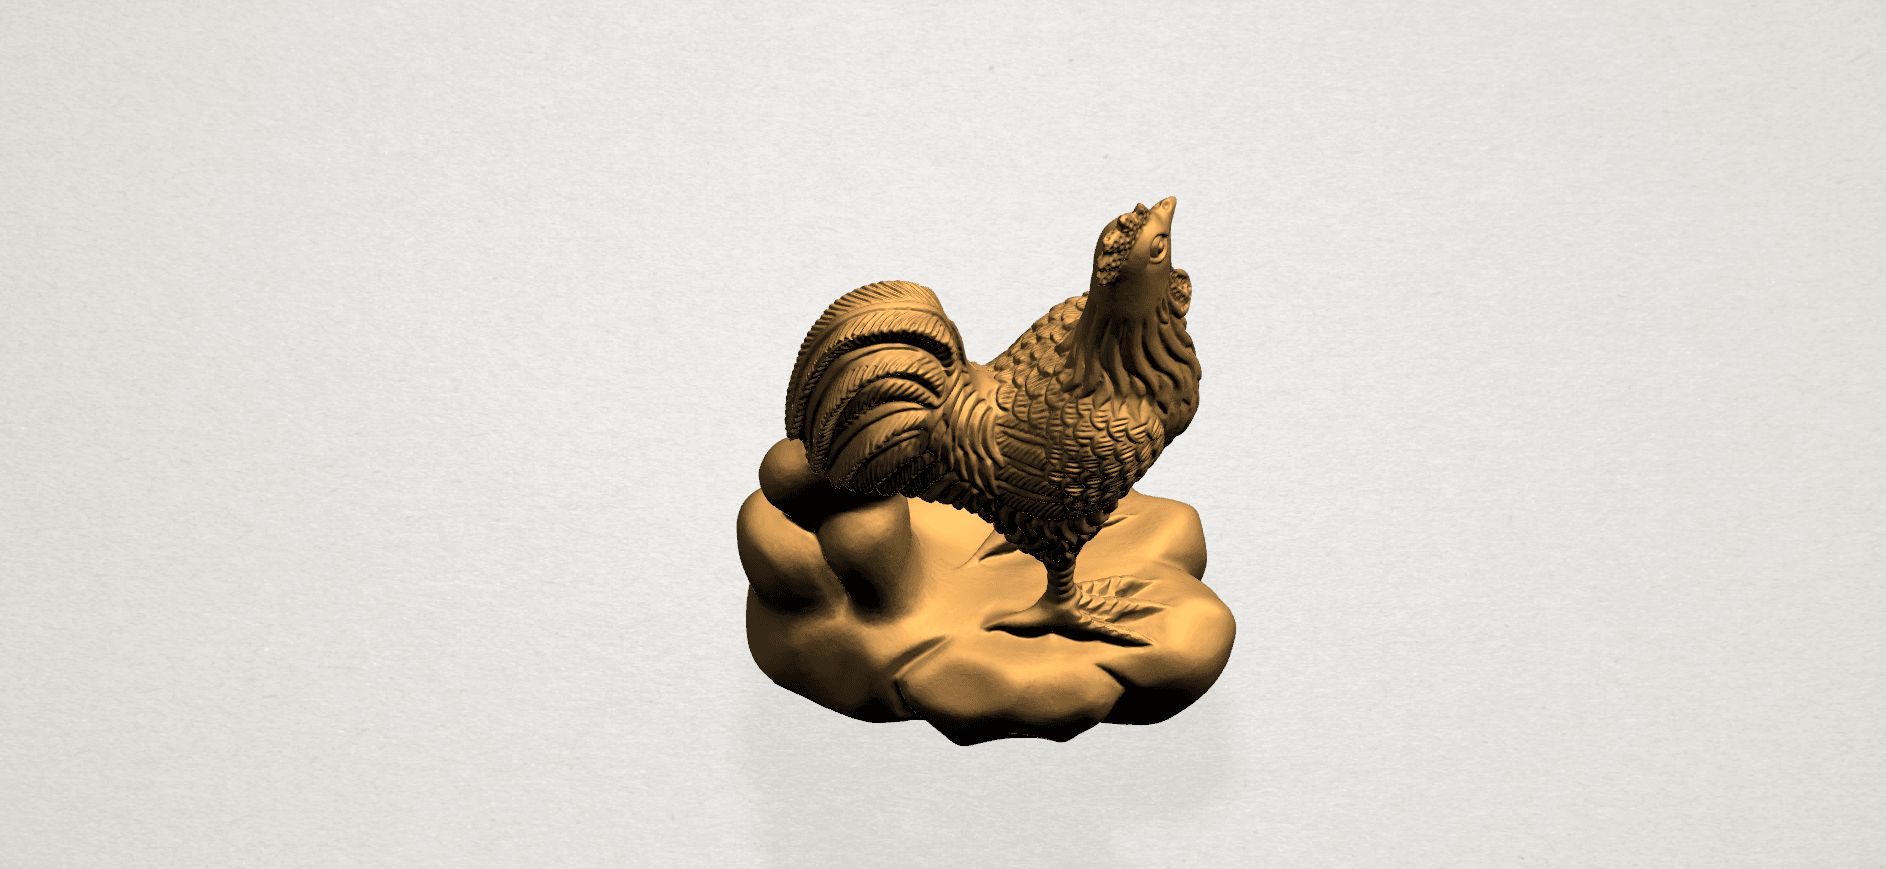 TDA0051j Chinese Horoscope10-A03.png Download free STL file Chinese Horoscope 10 Chicken - TOP MODEL • 3D printable design, GeorgesNikkei